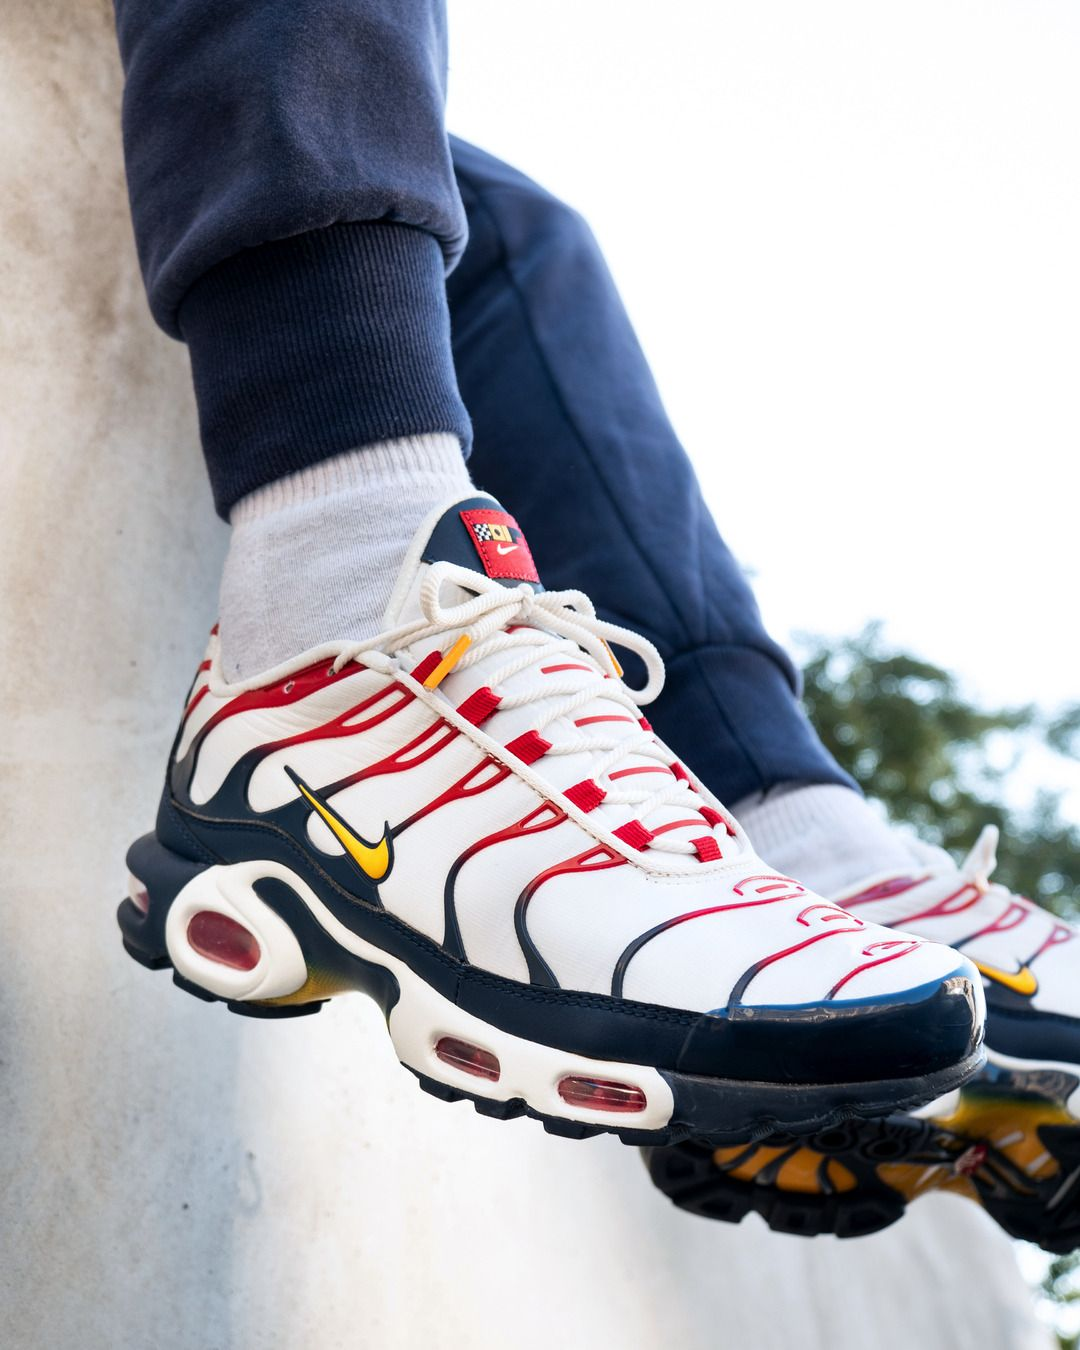 économiser 47396 0a62e Nike Air Max Tuned 1 'Nautical' | Cool stuff in 2019 | Nike ...